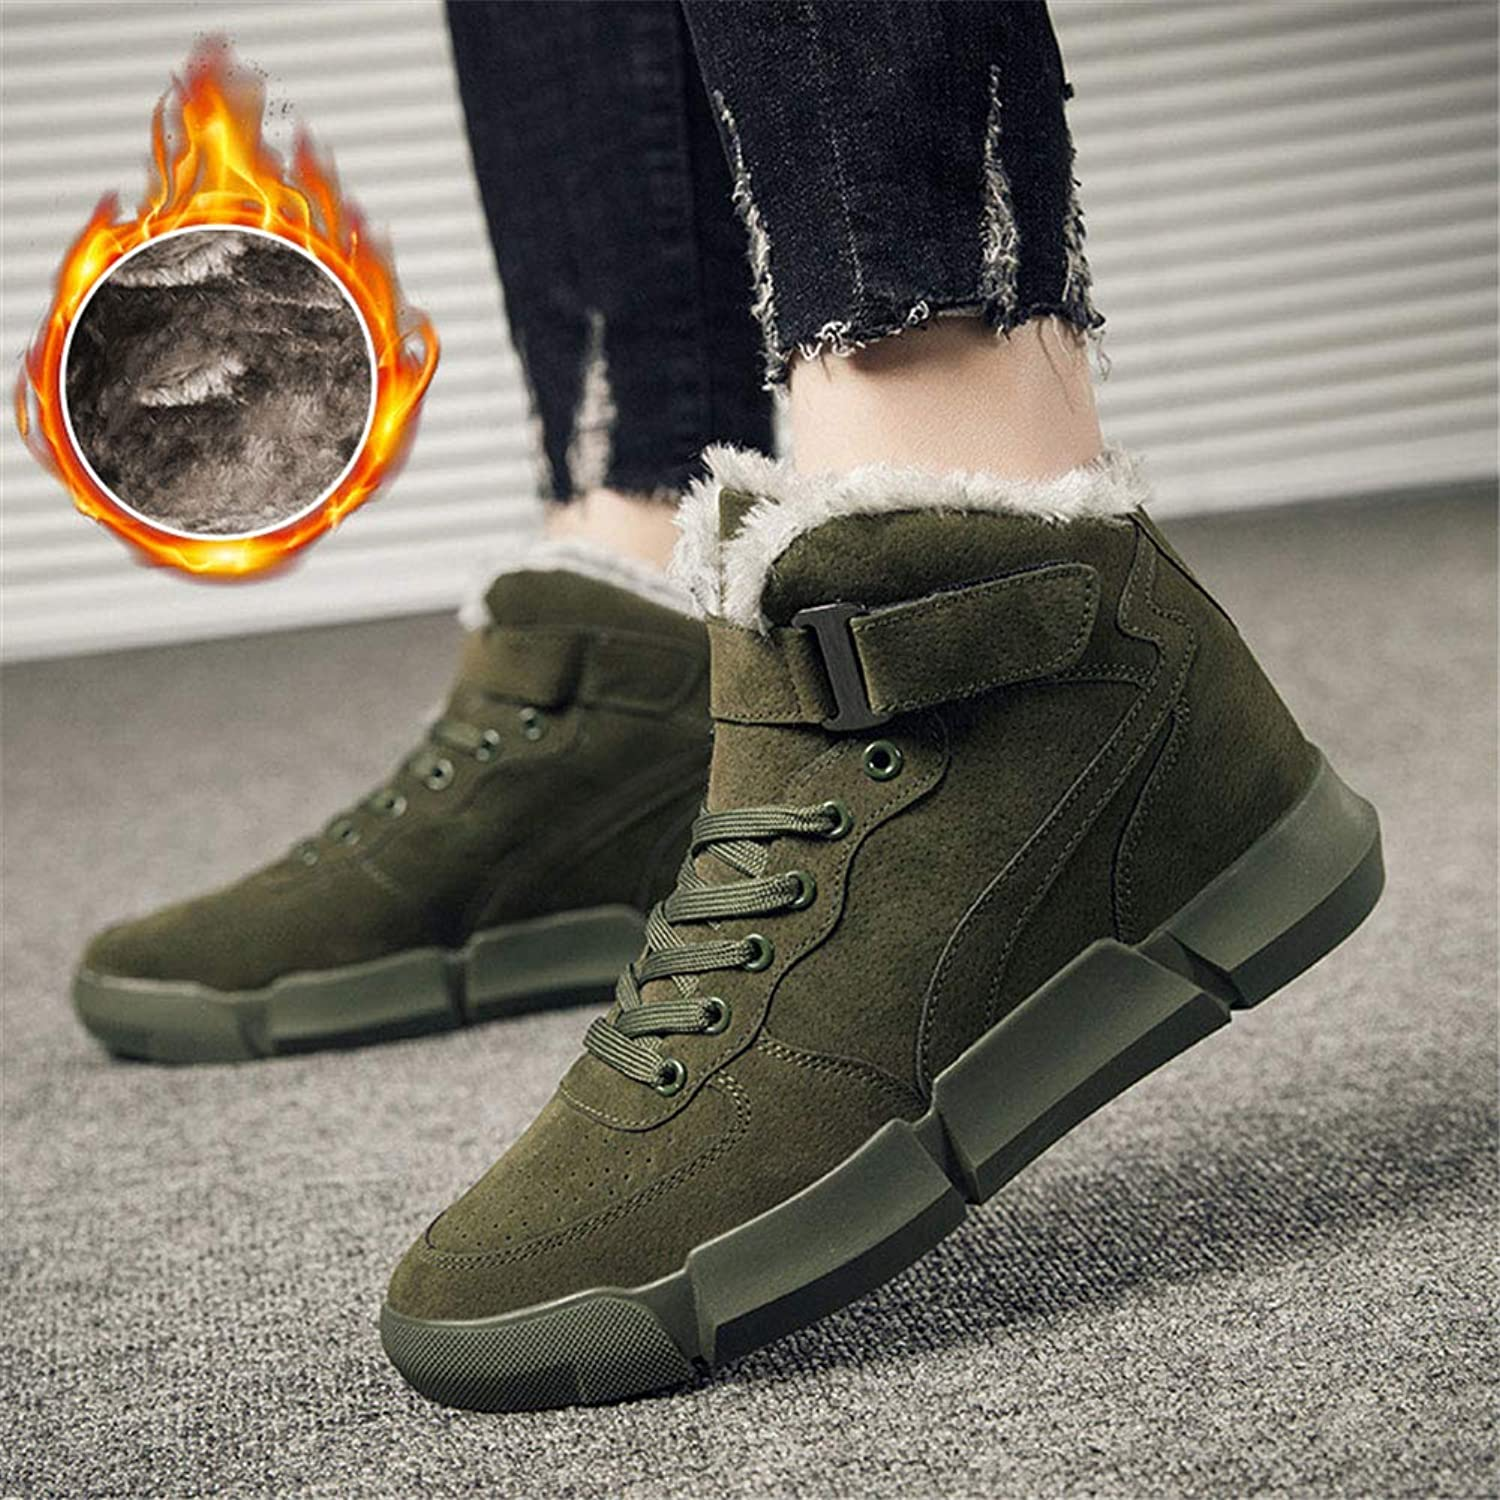 Men's shoes Men's Boots, Fall Winter Boots Fashion Snow Boots Martin Boots Cotton shoes Winter Men's Warm Plus Velvet Snow Boots Men's Fashion Boots (color   B)